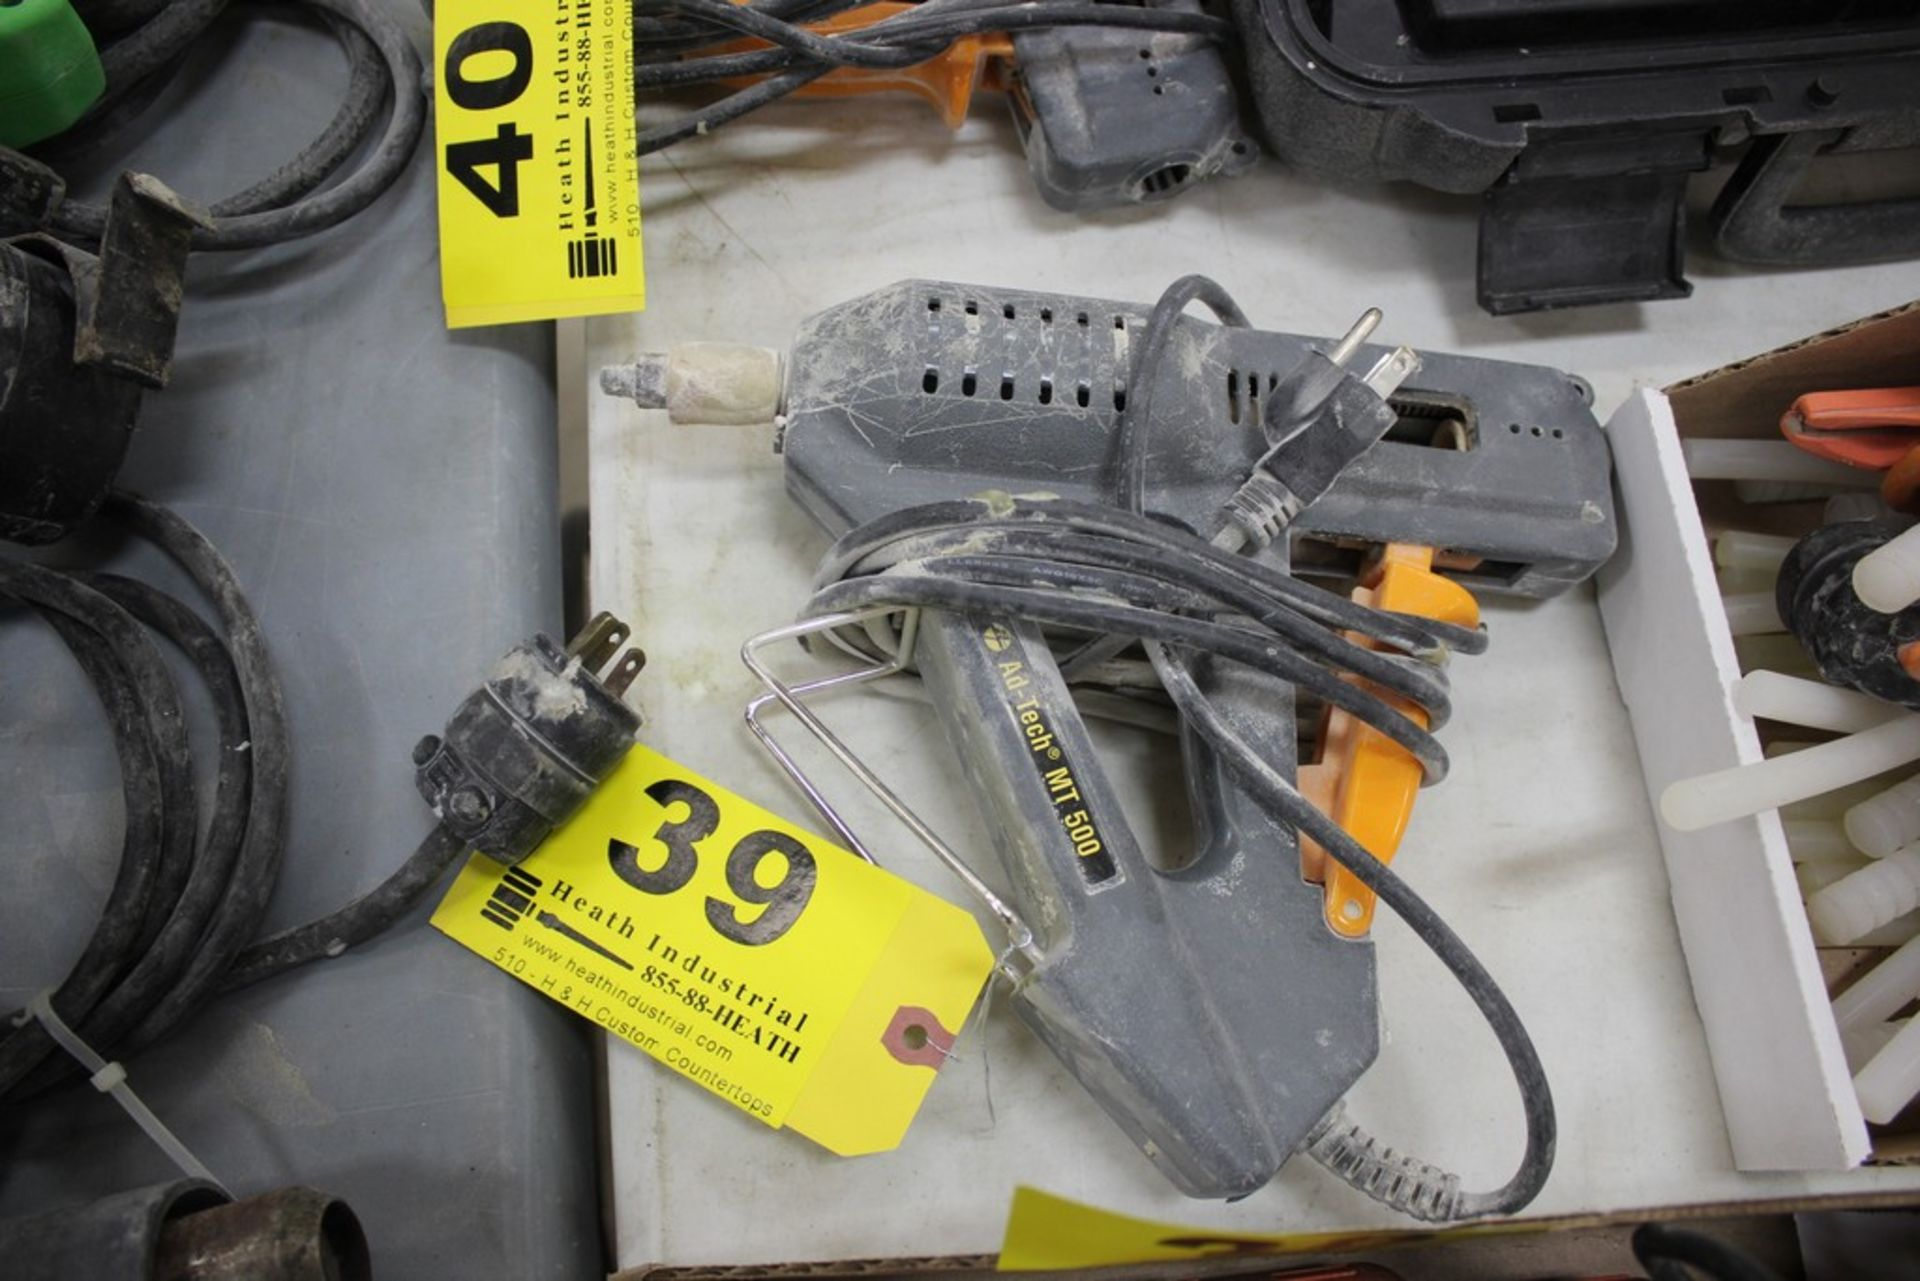 Lot 39 - AD TECH MT 500 HOT GLUE GUN APPLICATOR